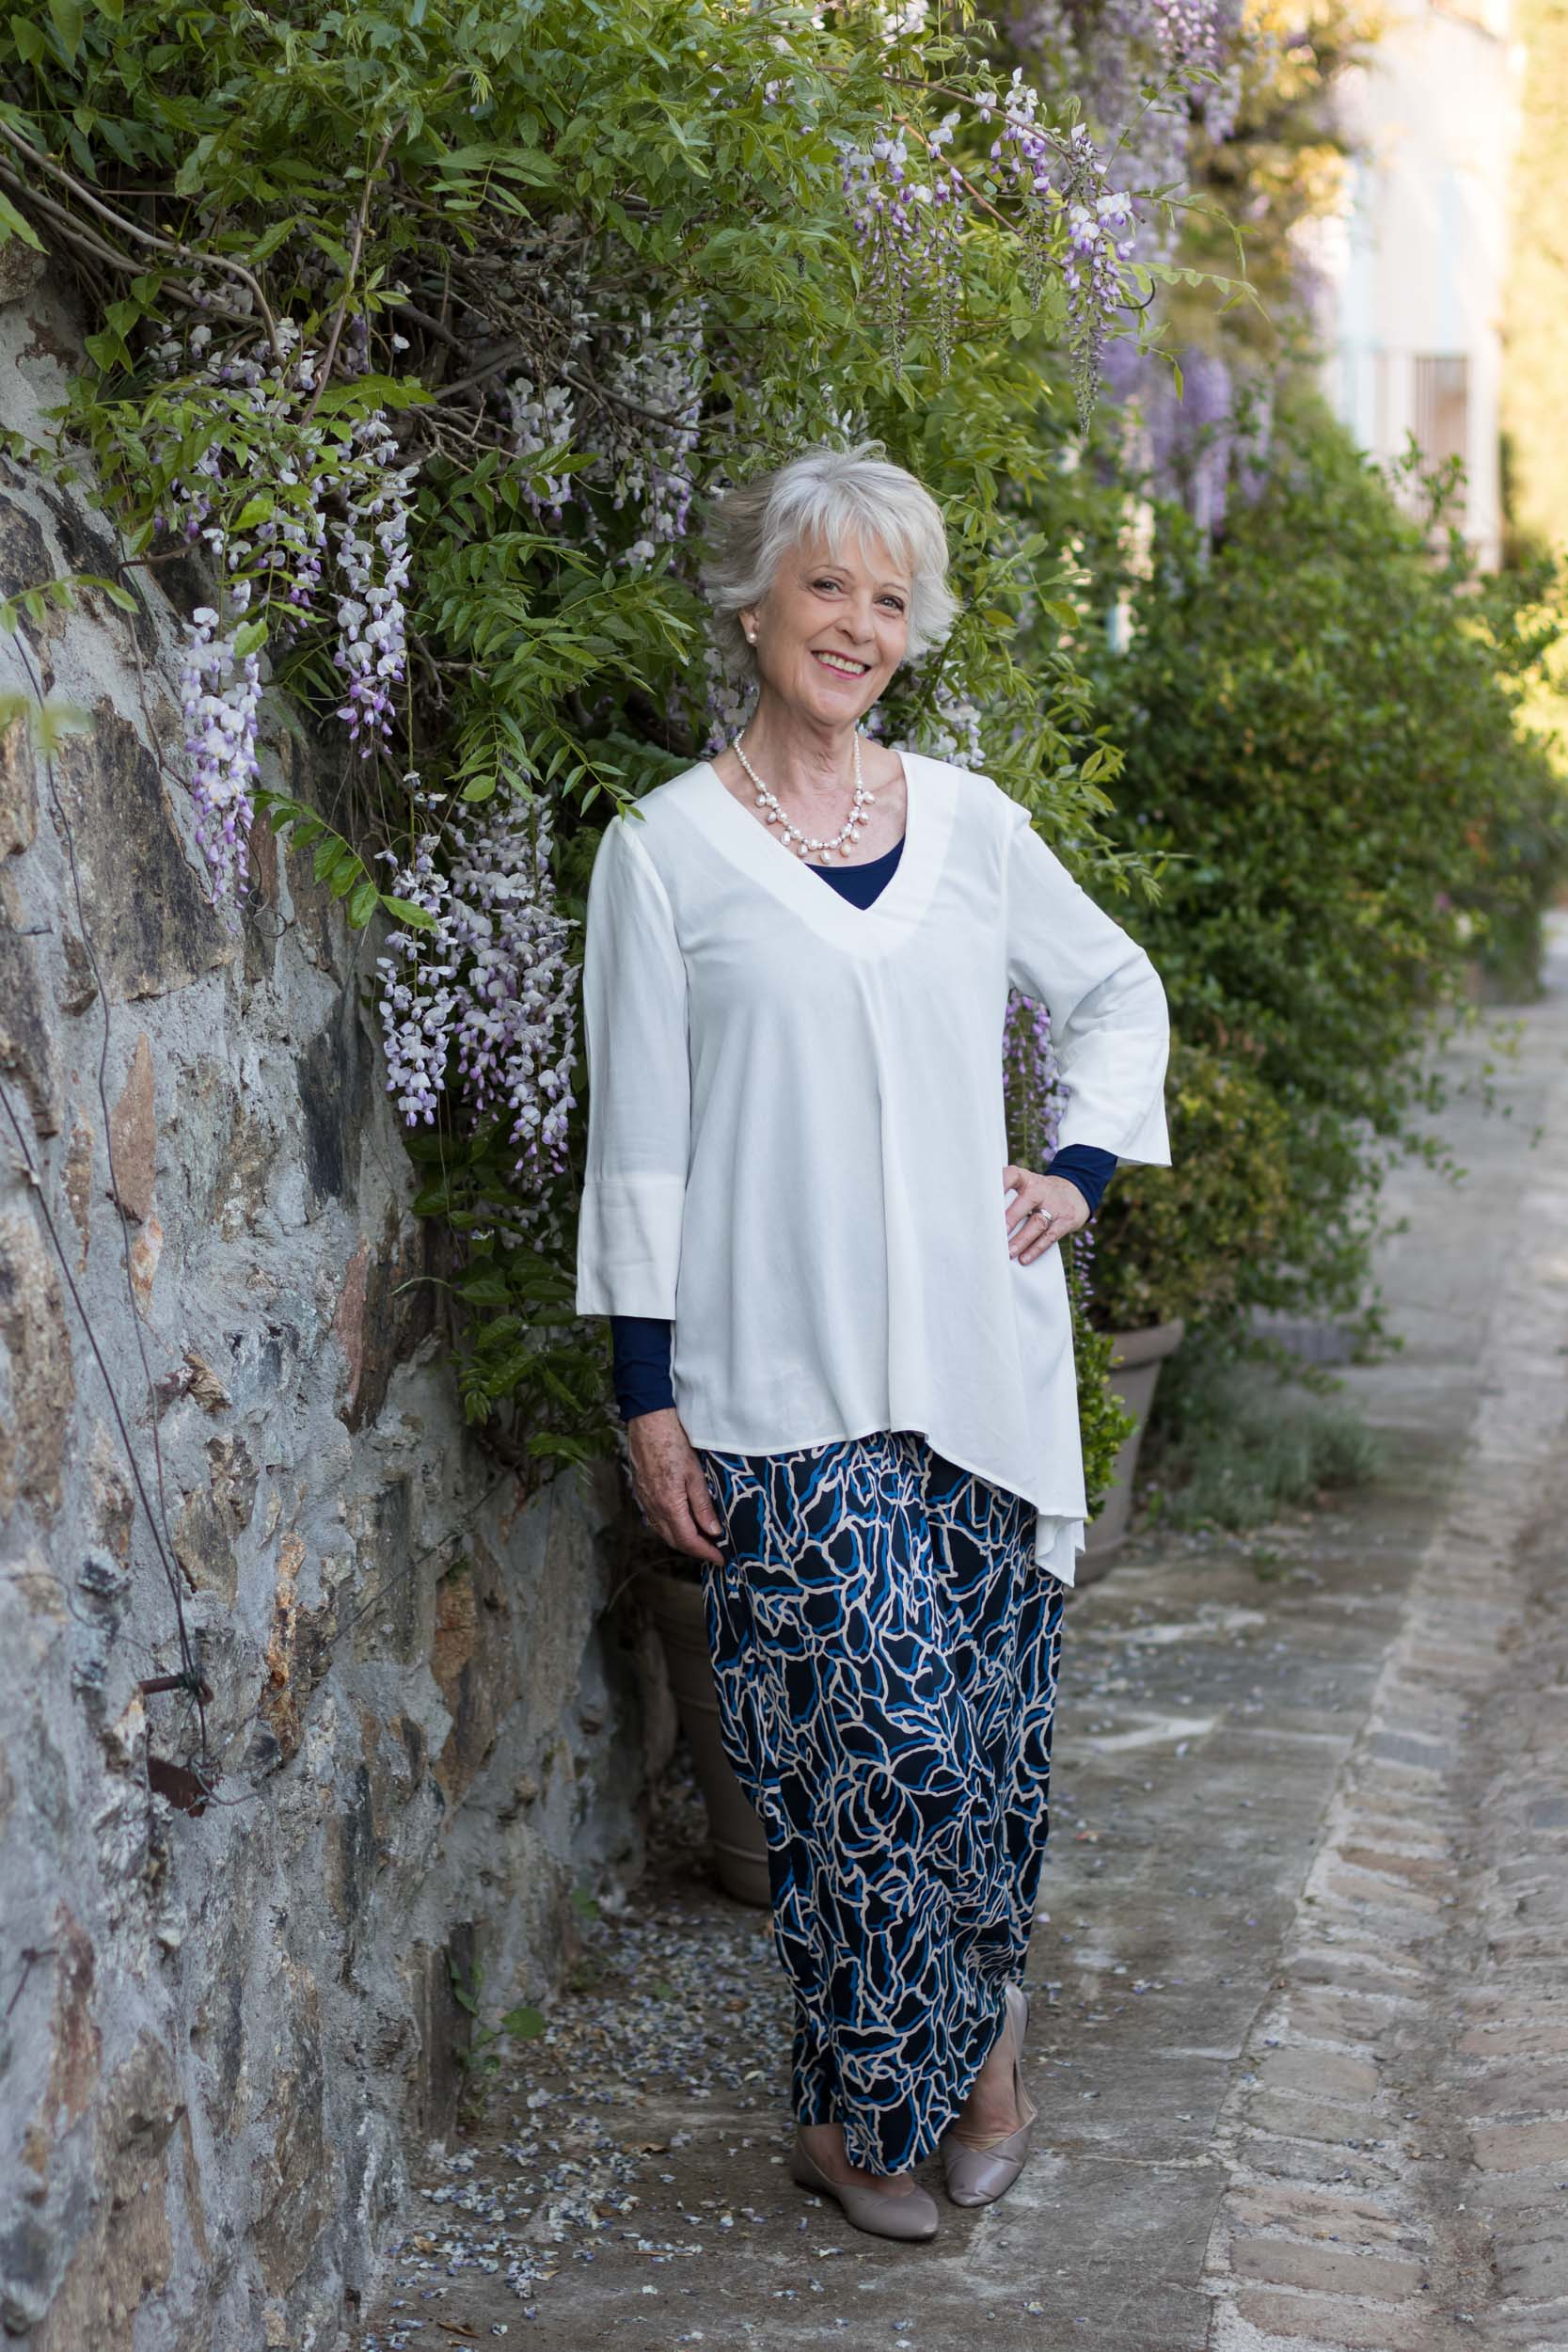 Blue print trousers and cream top